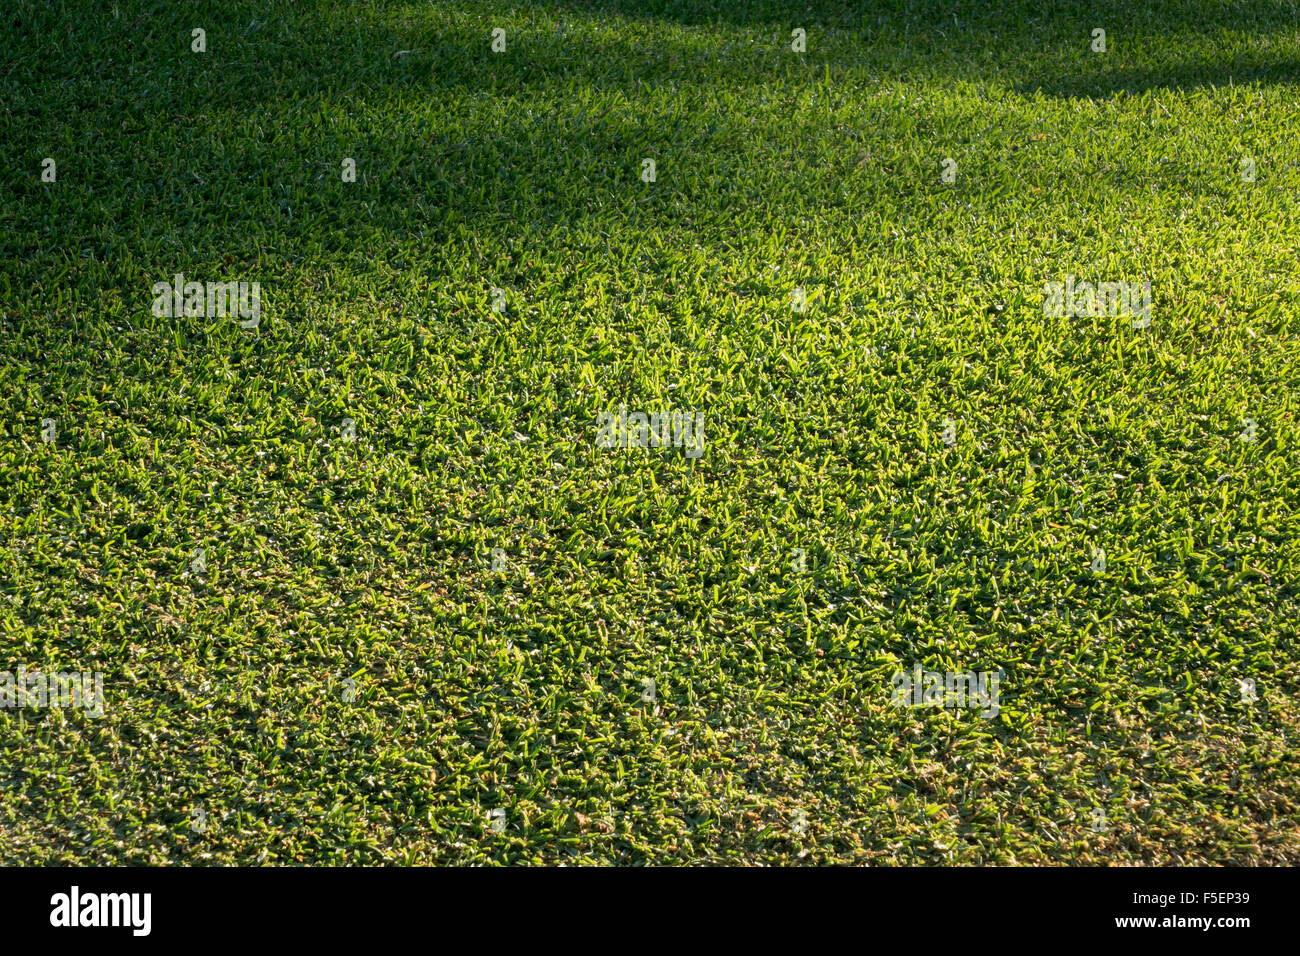 Green grass of a lawn freshly mown - Stock Image